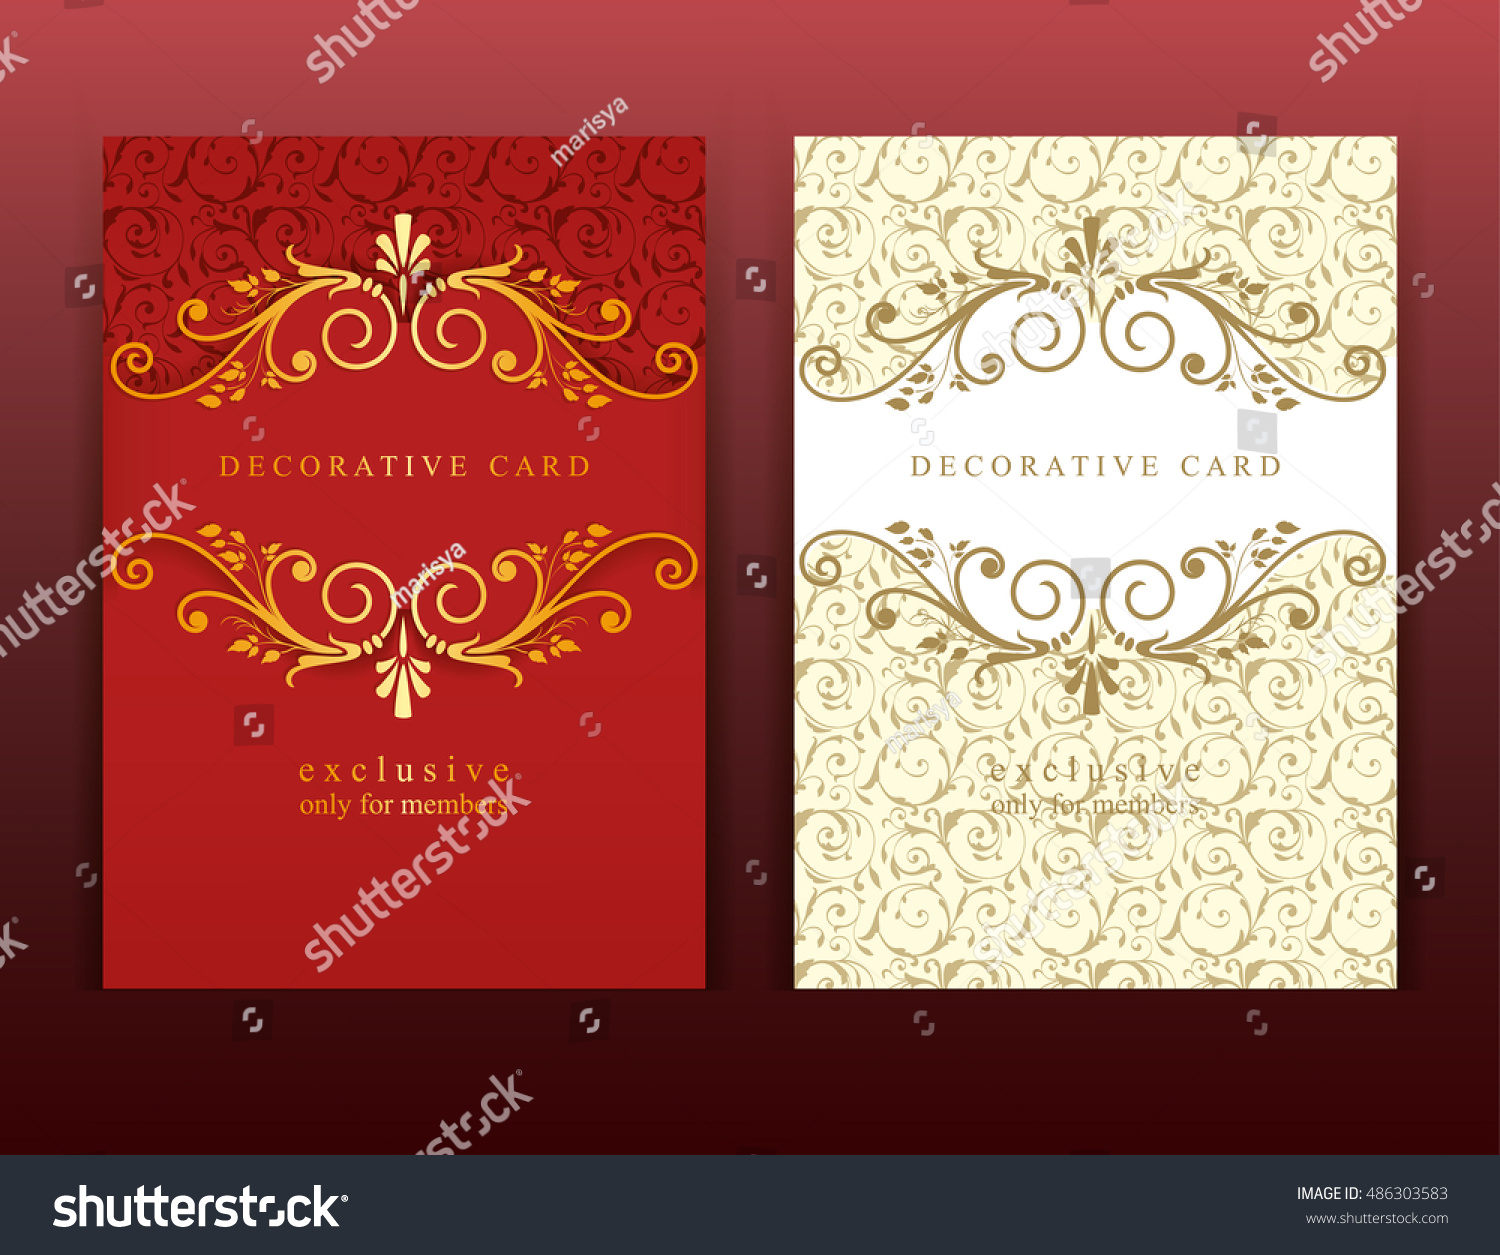 Colored Card Template Ornamental Elements Vintage Stock Vector ...